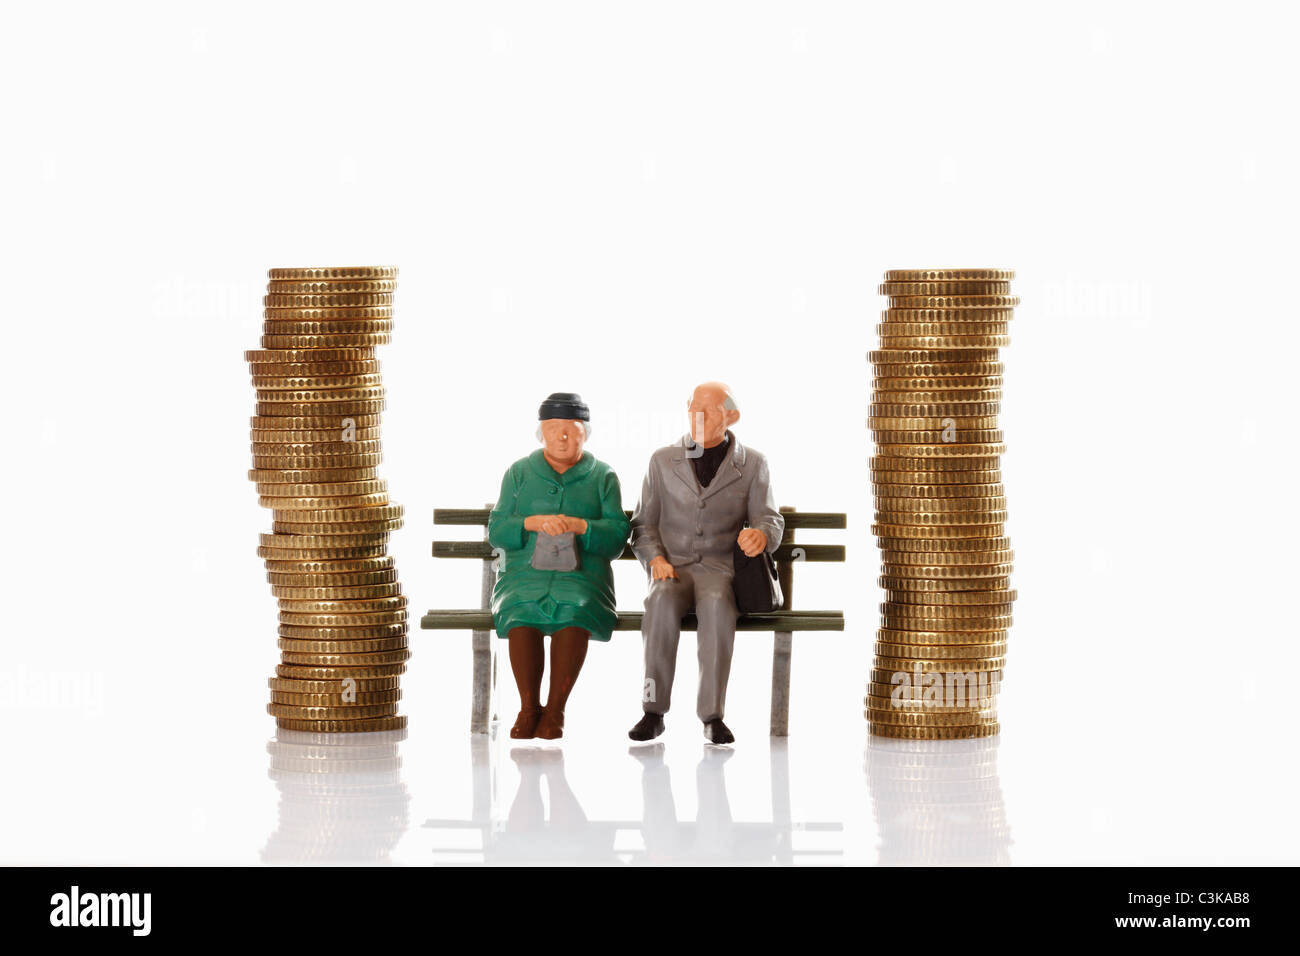 Figurines of old age pensioner sitting on bench between coin stacks - Stock Image